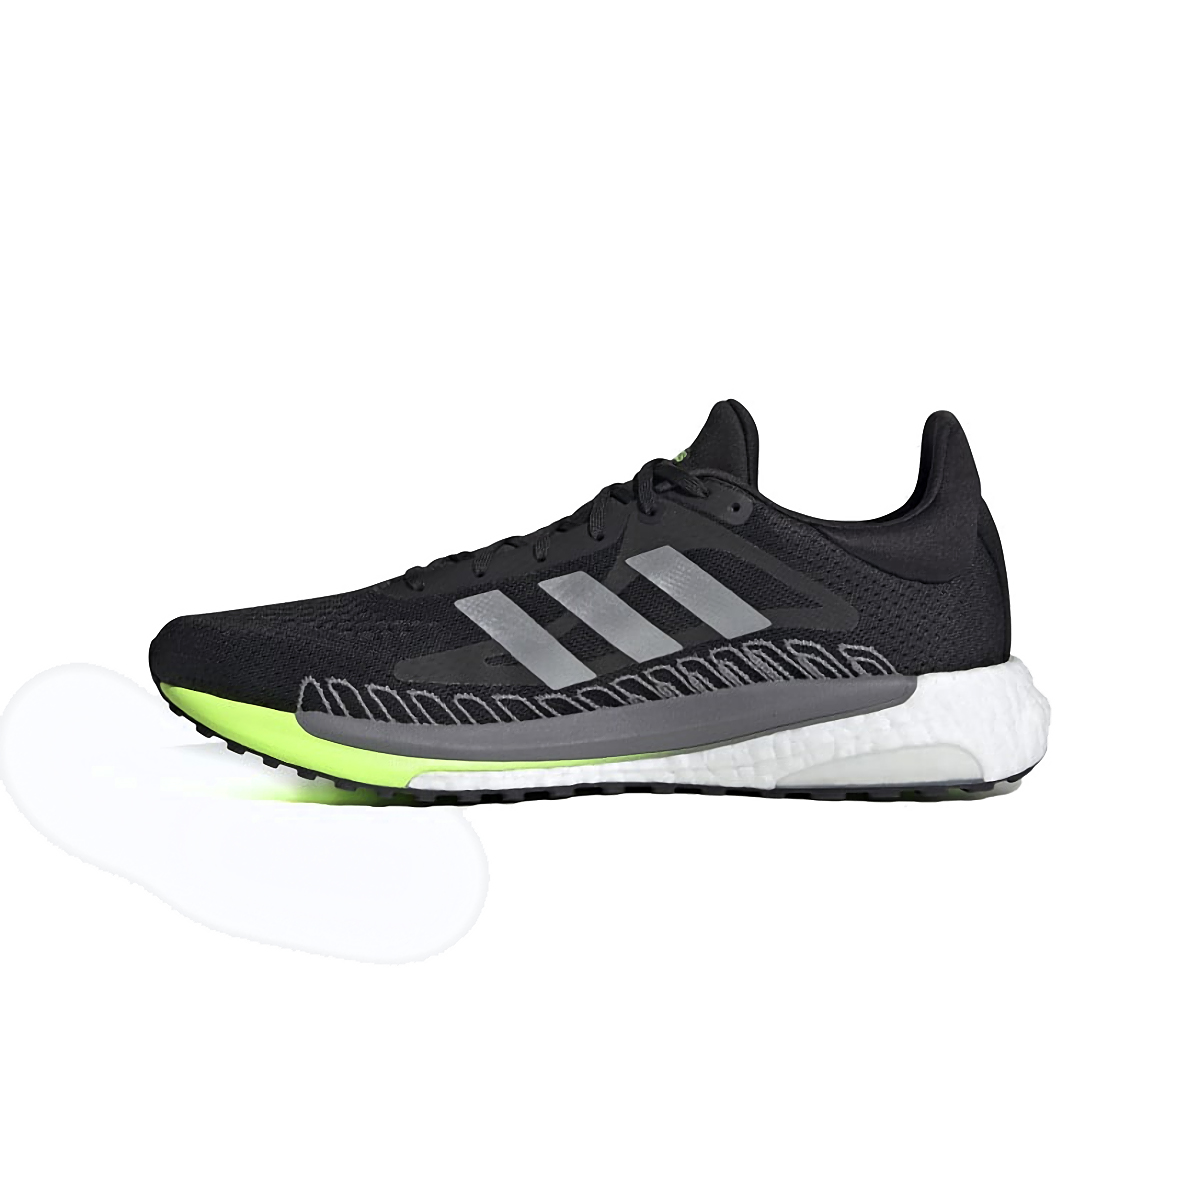 Men's Adidas Solarglide 3 Running Shoe - Color: Grey/Silver Metallic/Signal Green - Size: 6.5 - Width: Regular, Grey/Silver Metallic/Signal Green, large, image 2